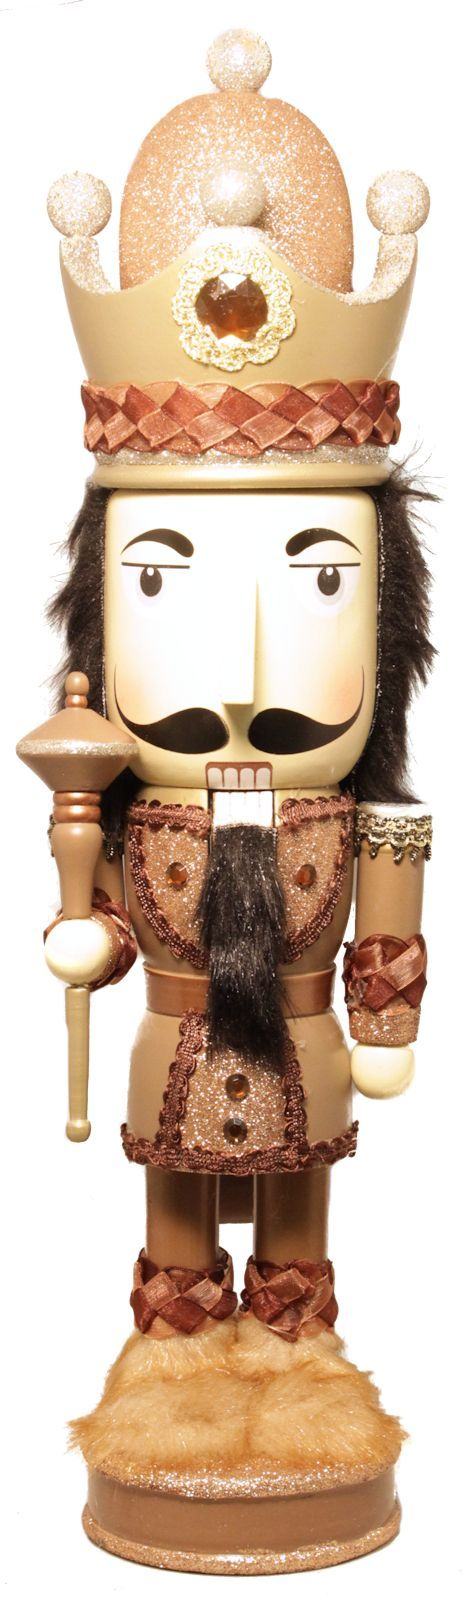 Large Faced Gold Glitter King Wearing Crown 18 Inch Wooden Christmas Nutcracker